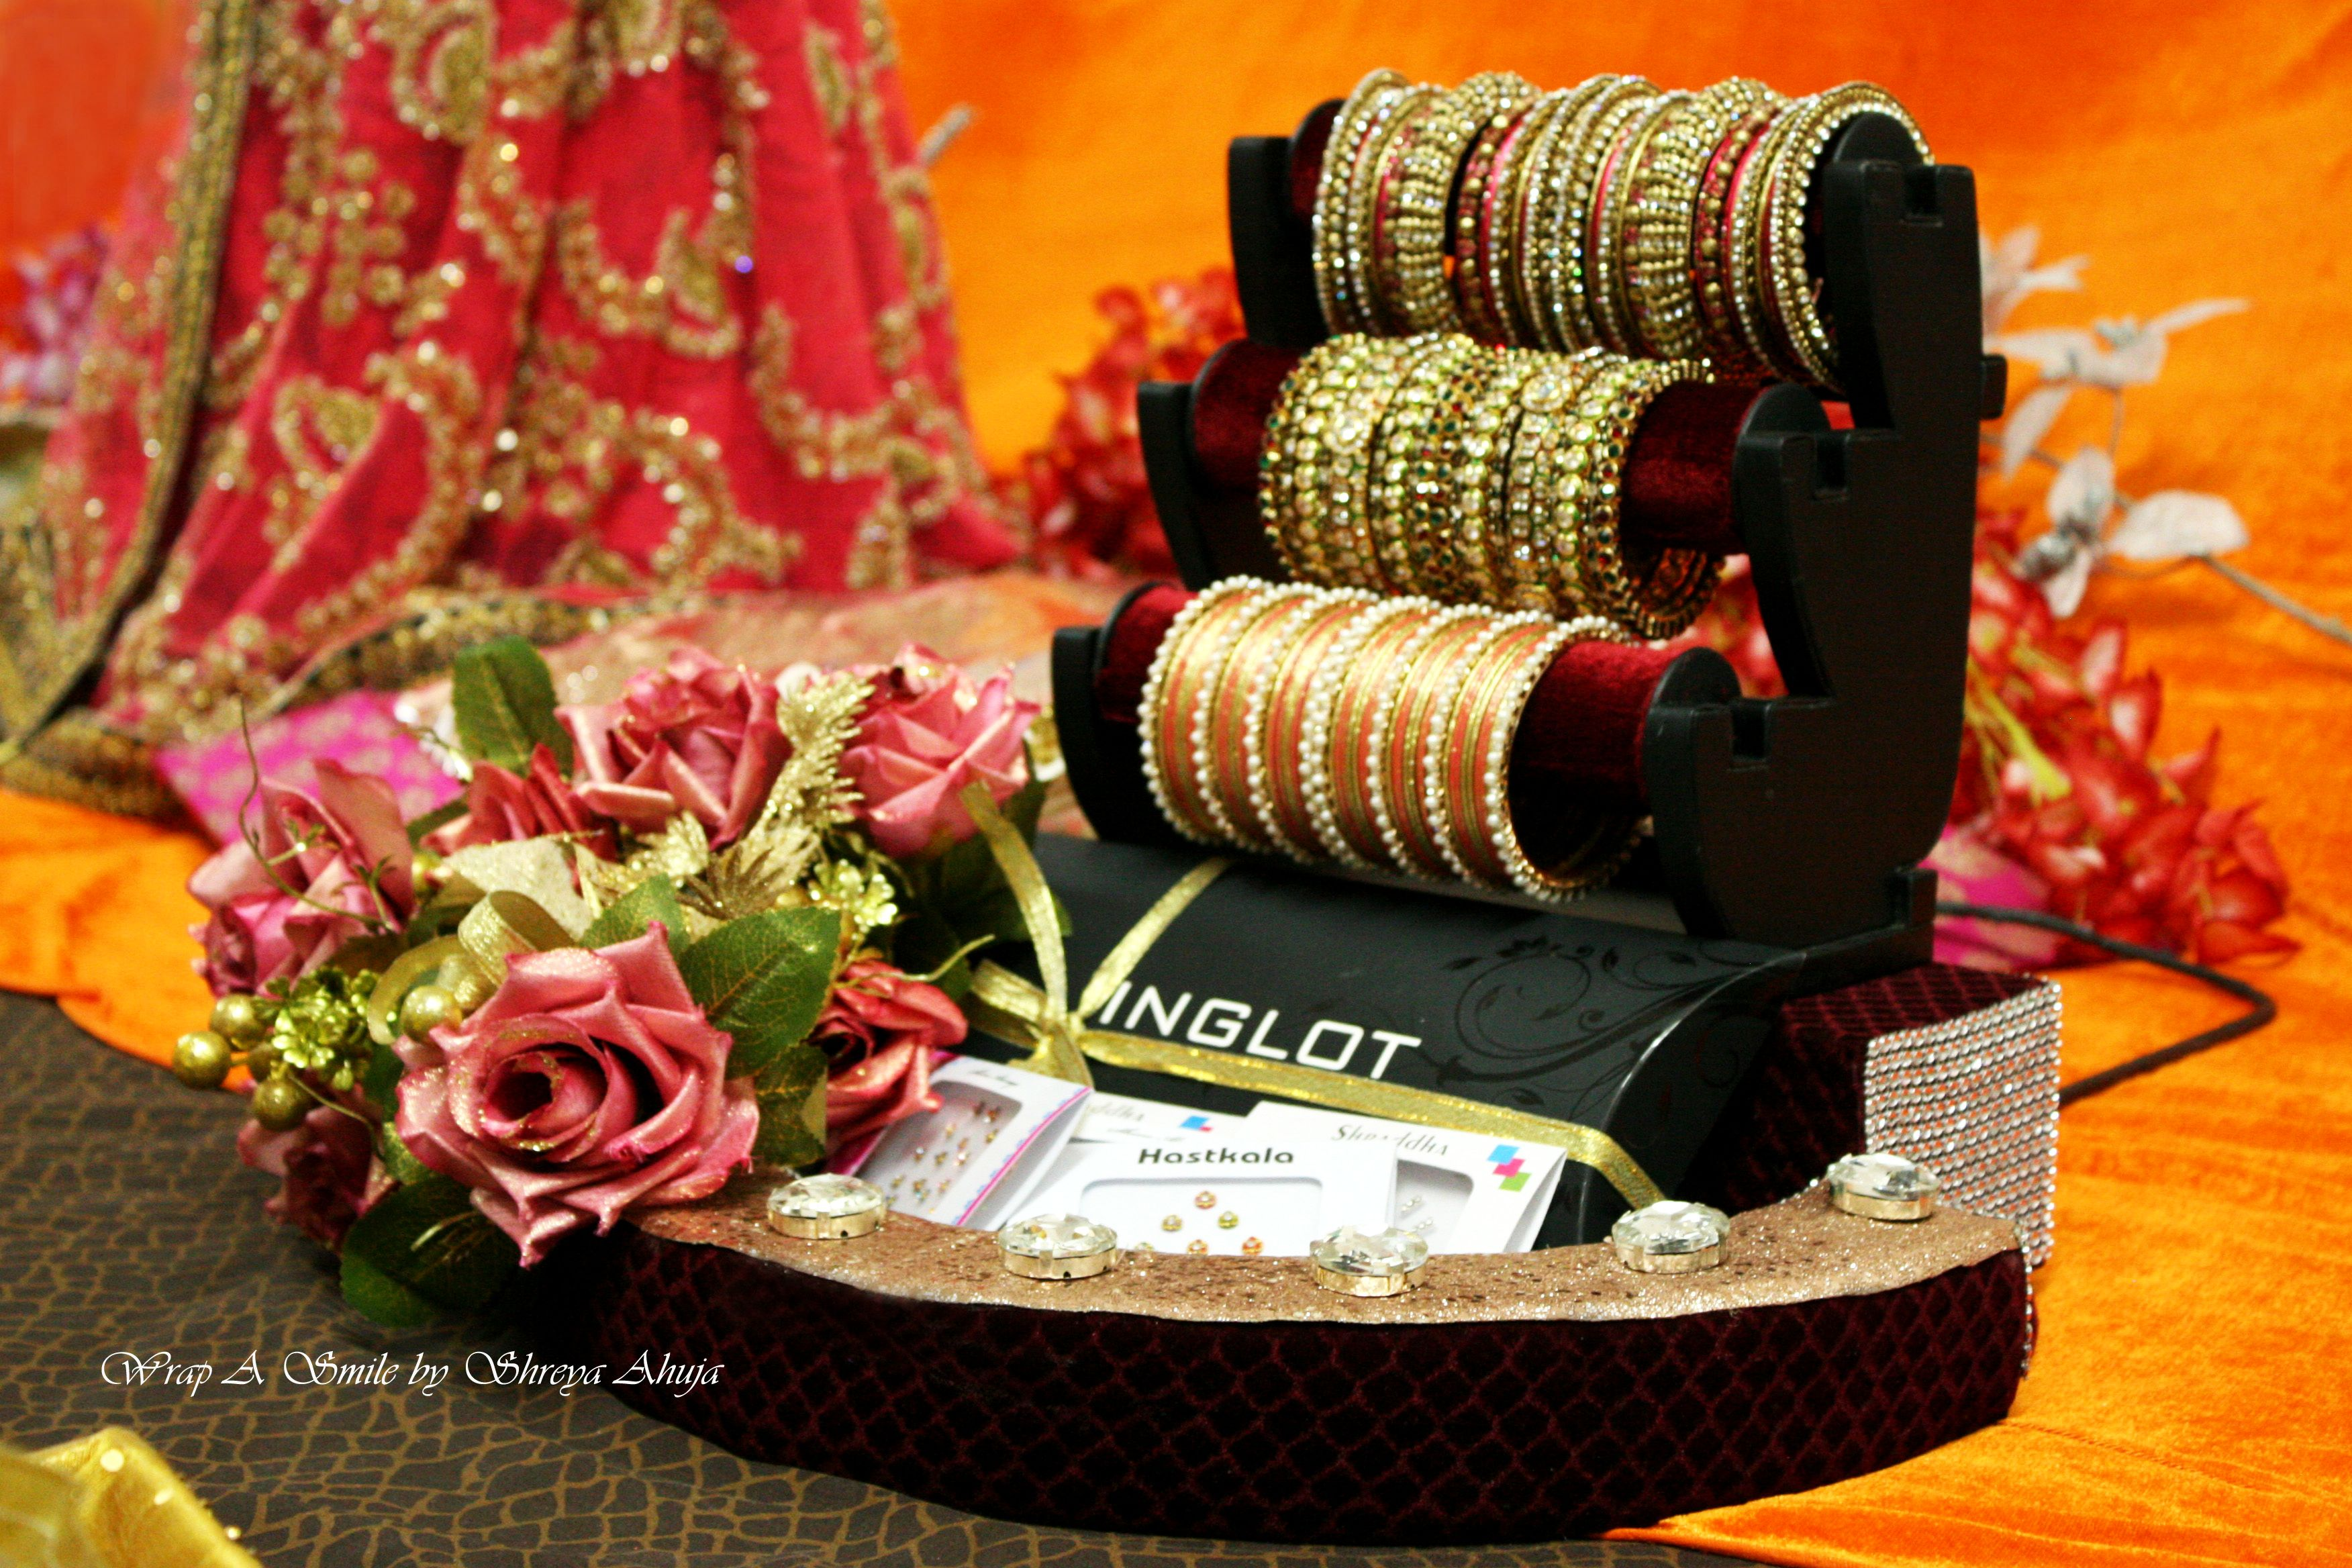 trousseau packing ideas Google Search Wedding gifts